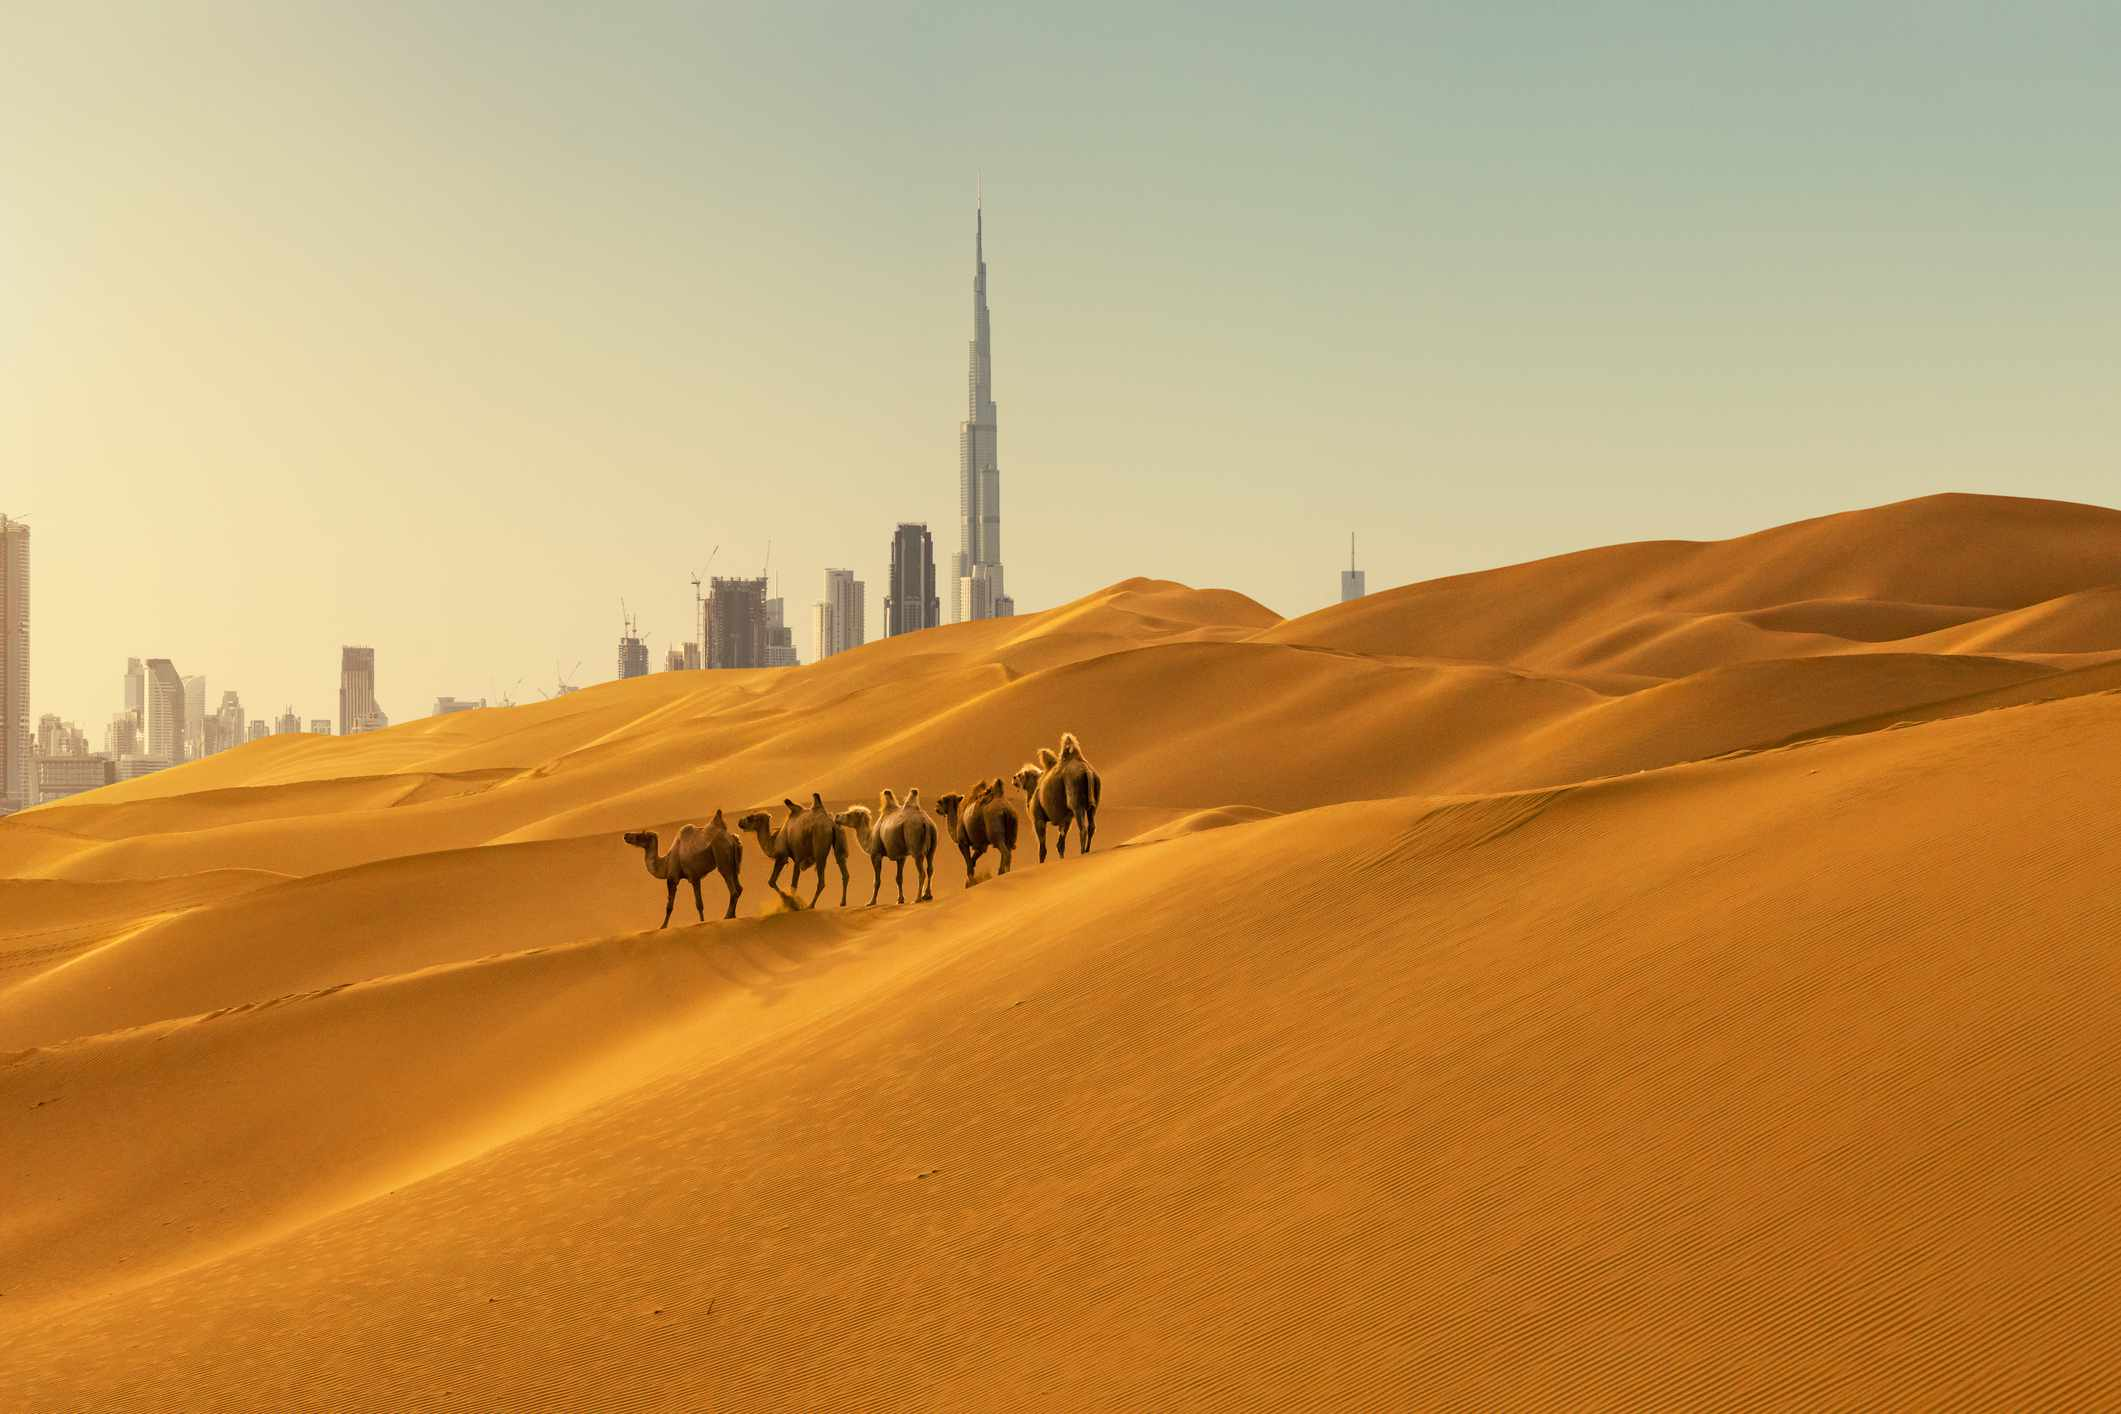 Camels in desert with business district in the background